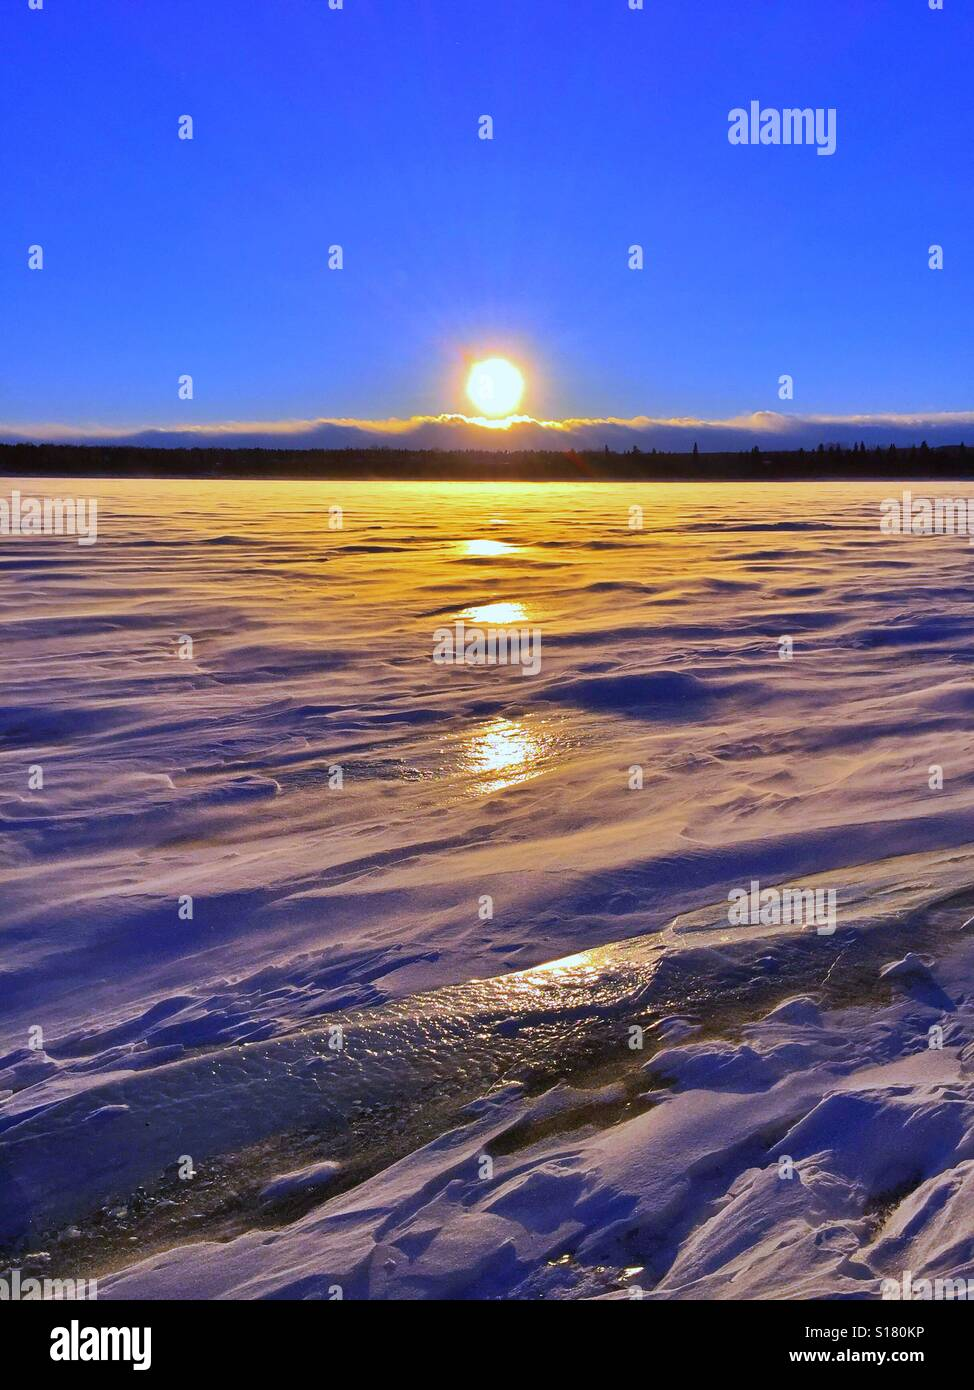 Setting sun and reflections on a lake - Stock Image